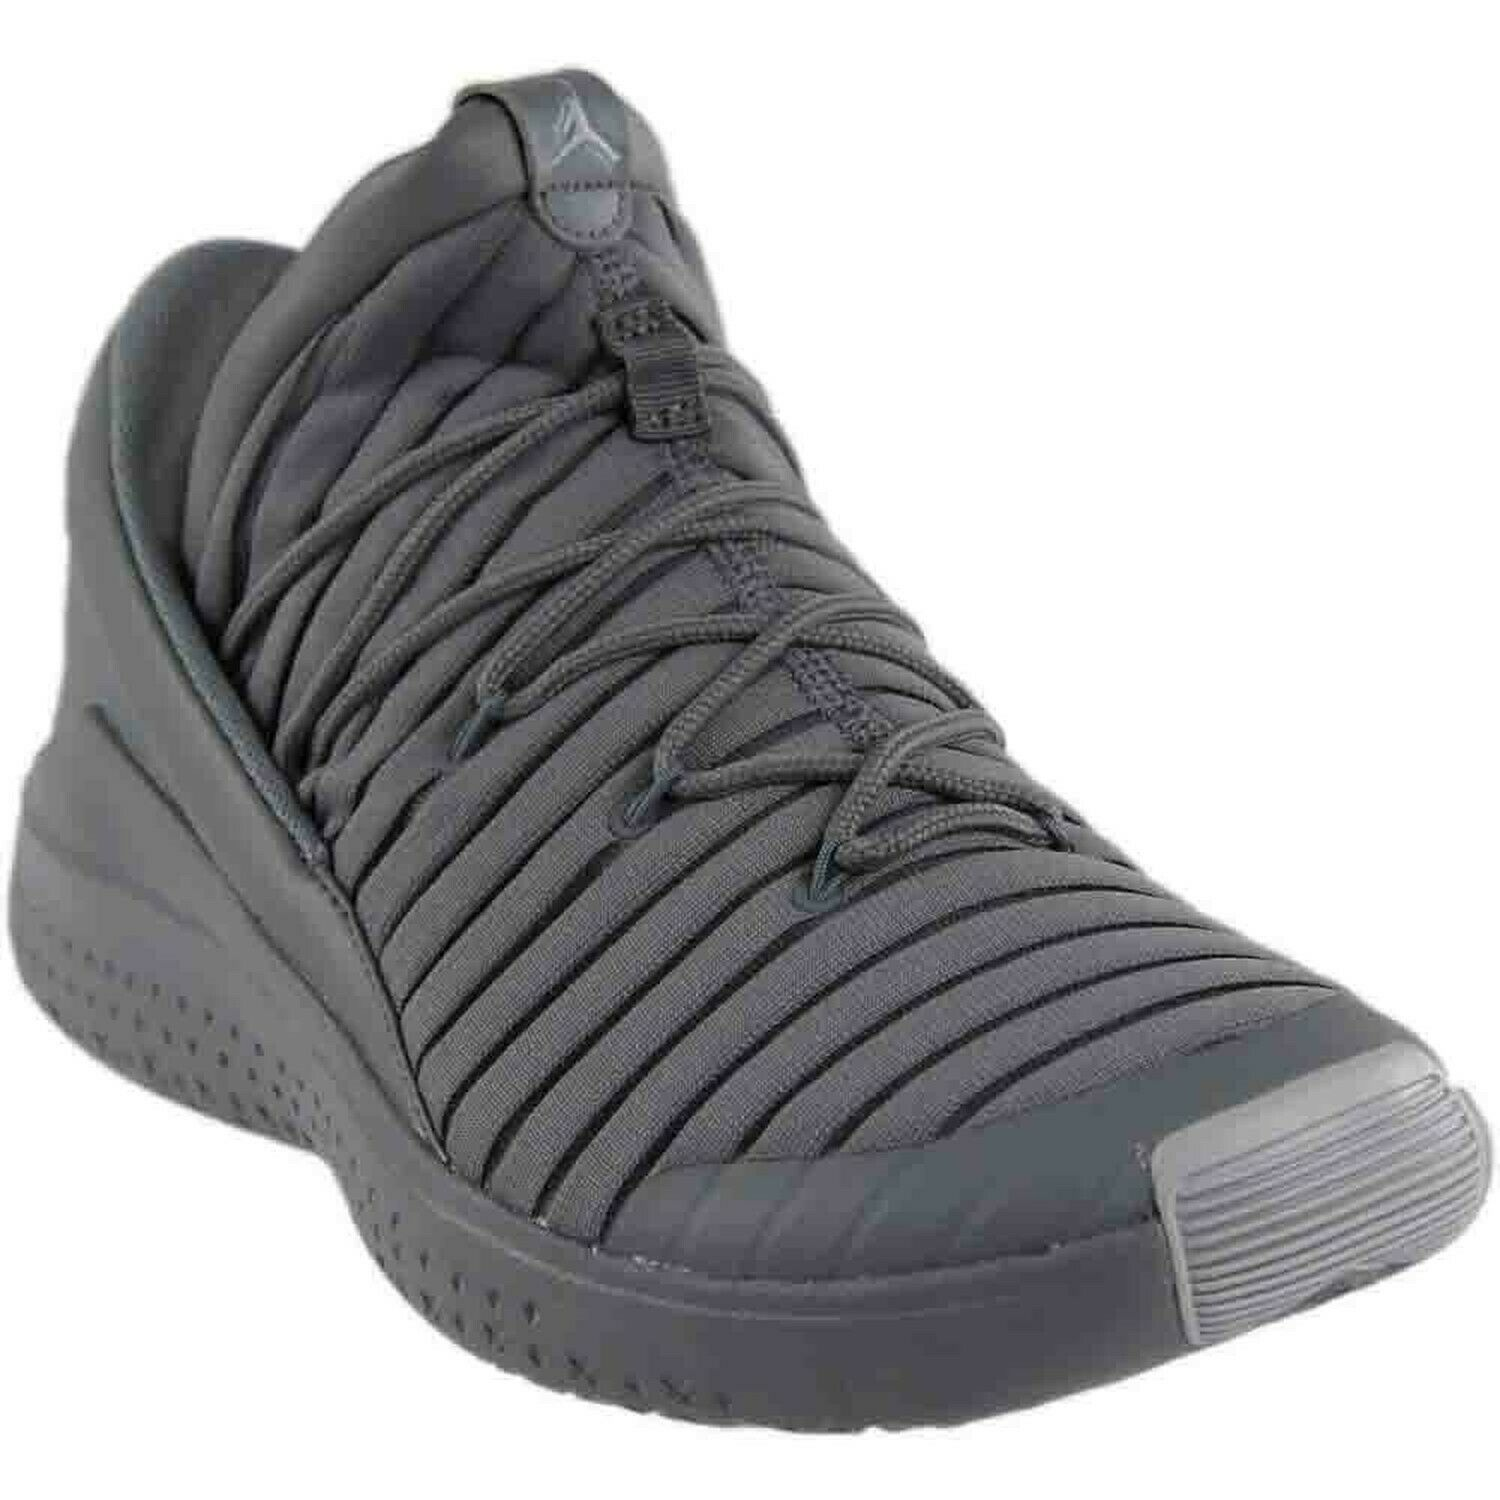 sale retailer 58f1d 175f7 NIKE AIR JORDAN FLIGHT LUXE MENS BASKETBALL TRAINERS SHOES SIZE 8.5 US  SNEAKERS nxydbj5728-Athletic Shoes